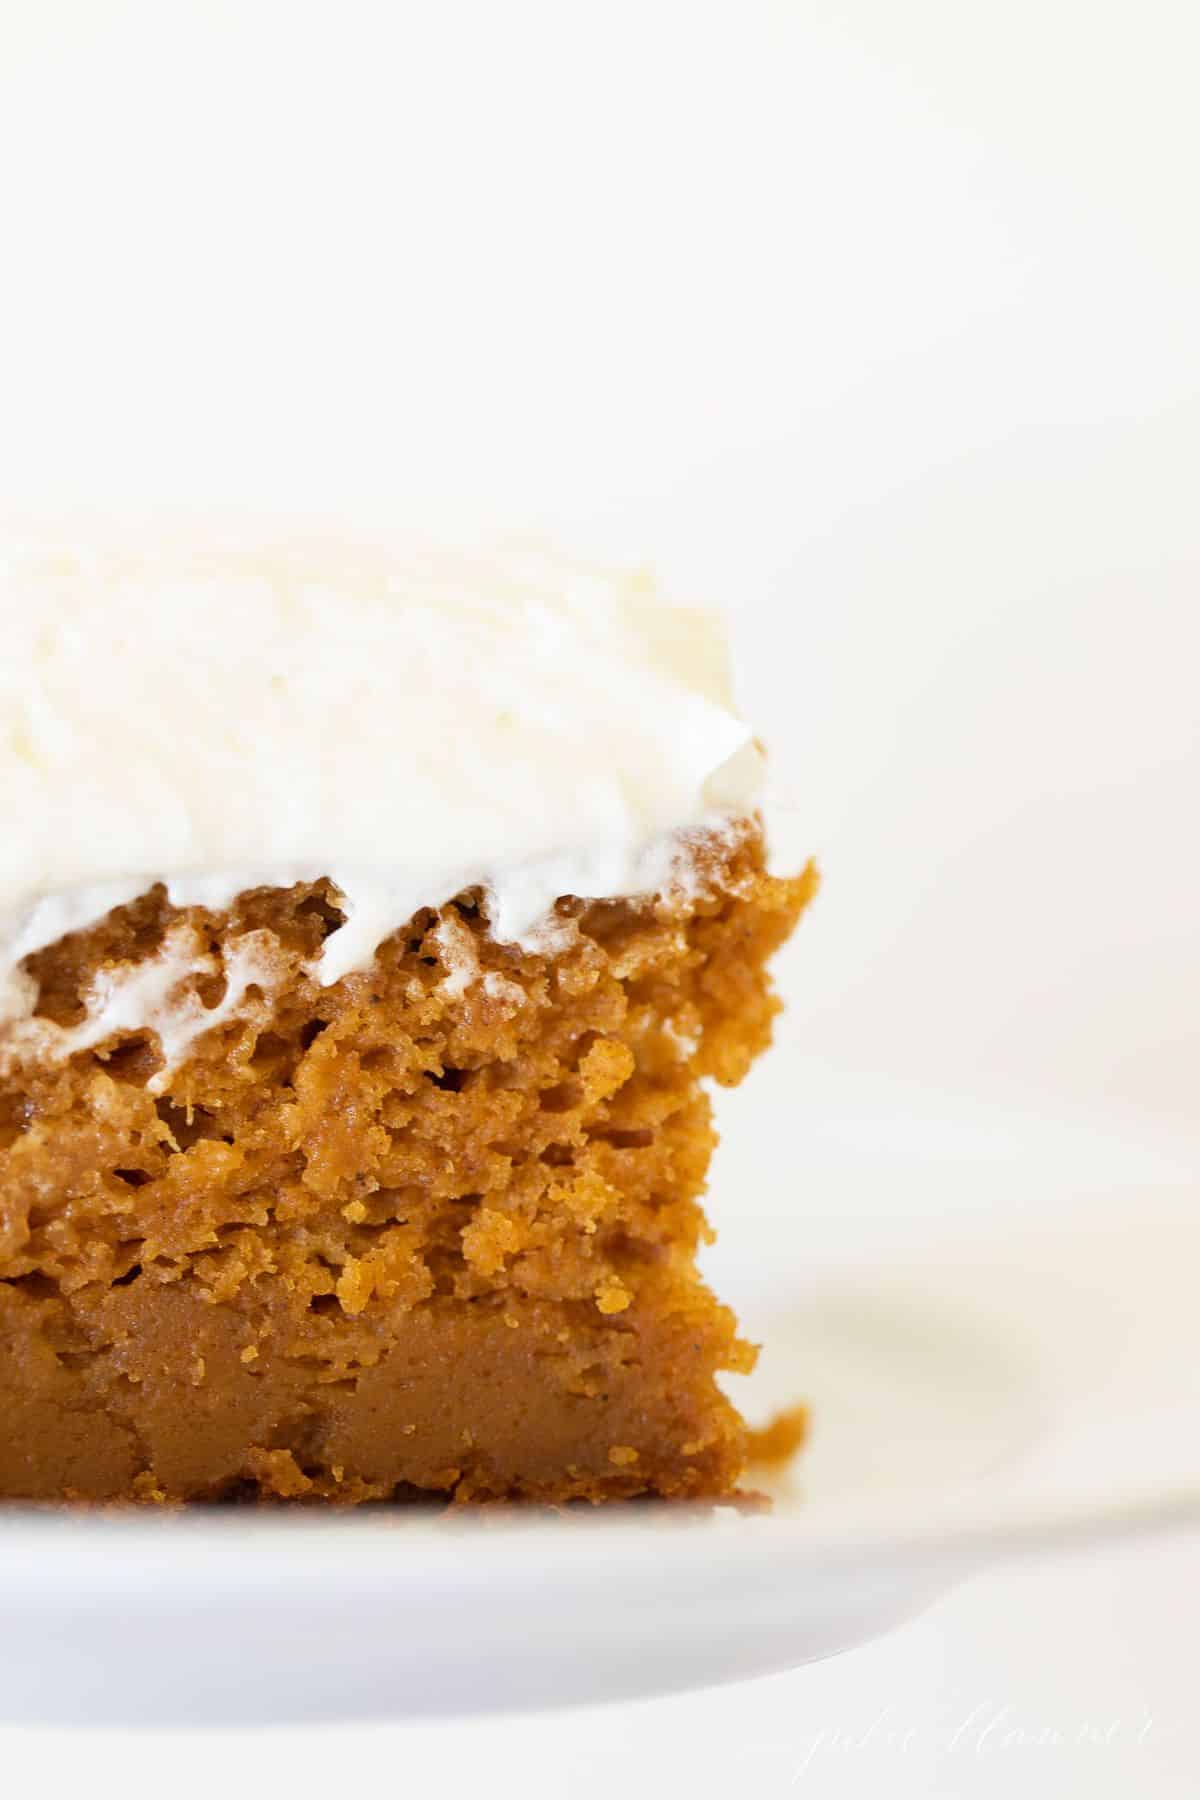 Close-up of a slice of pumpkin cake covered in creamy frosting. #pumpkincake #pumpkincakerecipe